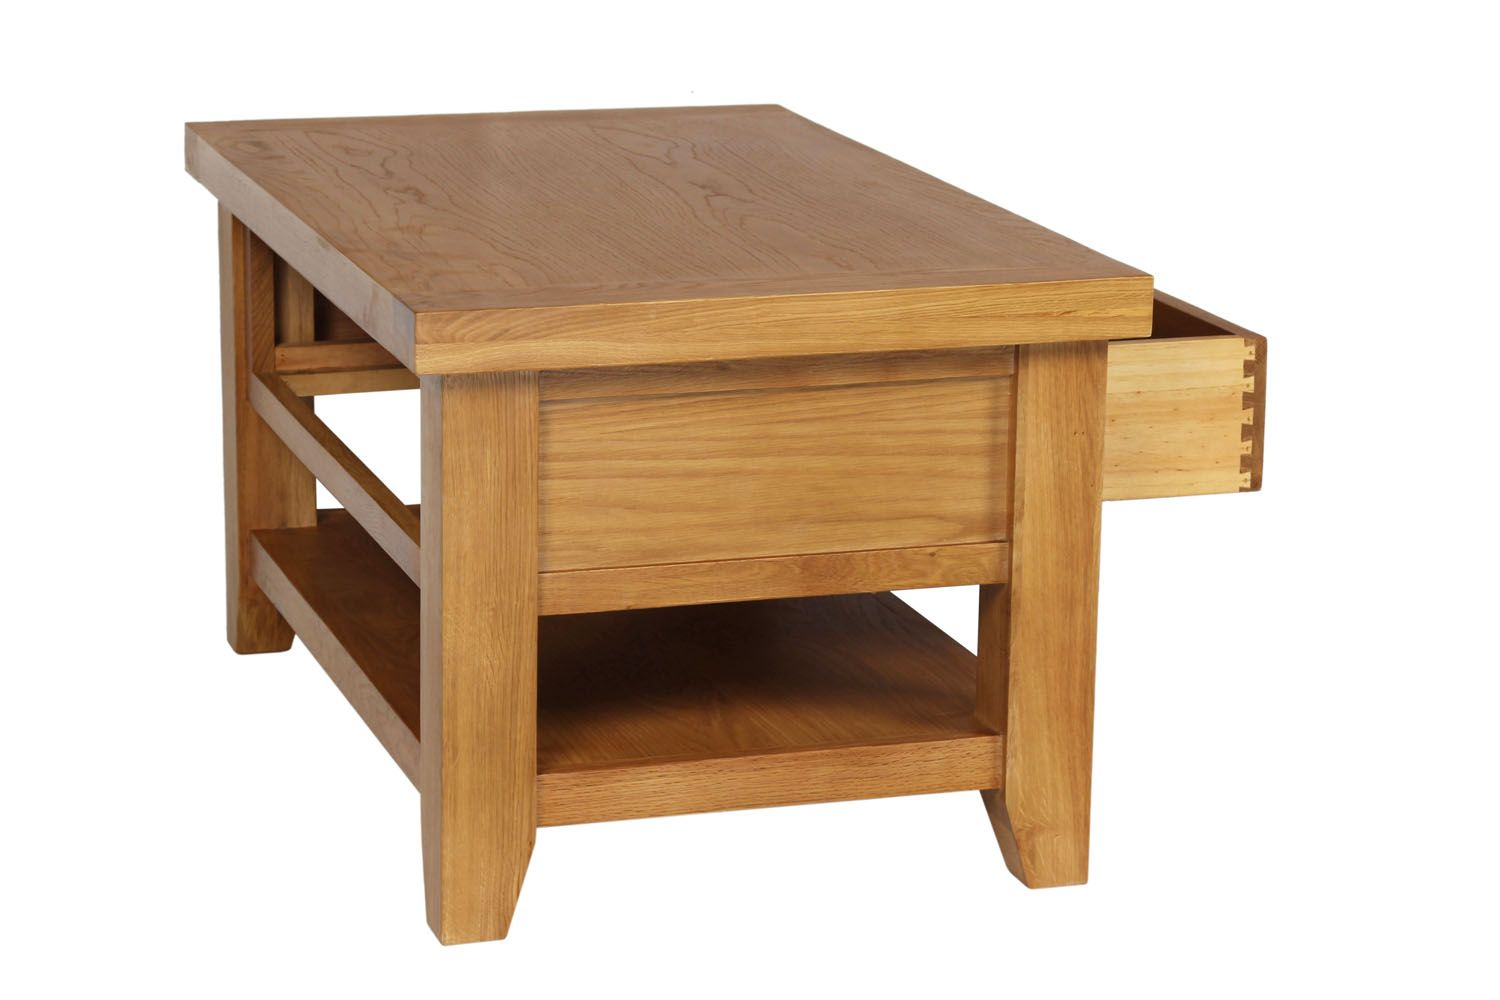 Country Oak Coffee Table With Drawer Shelf Free Delivery Top - Coffee table with drawers and shelf